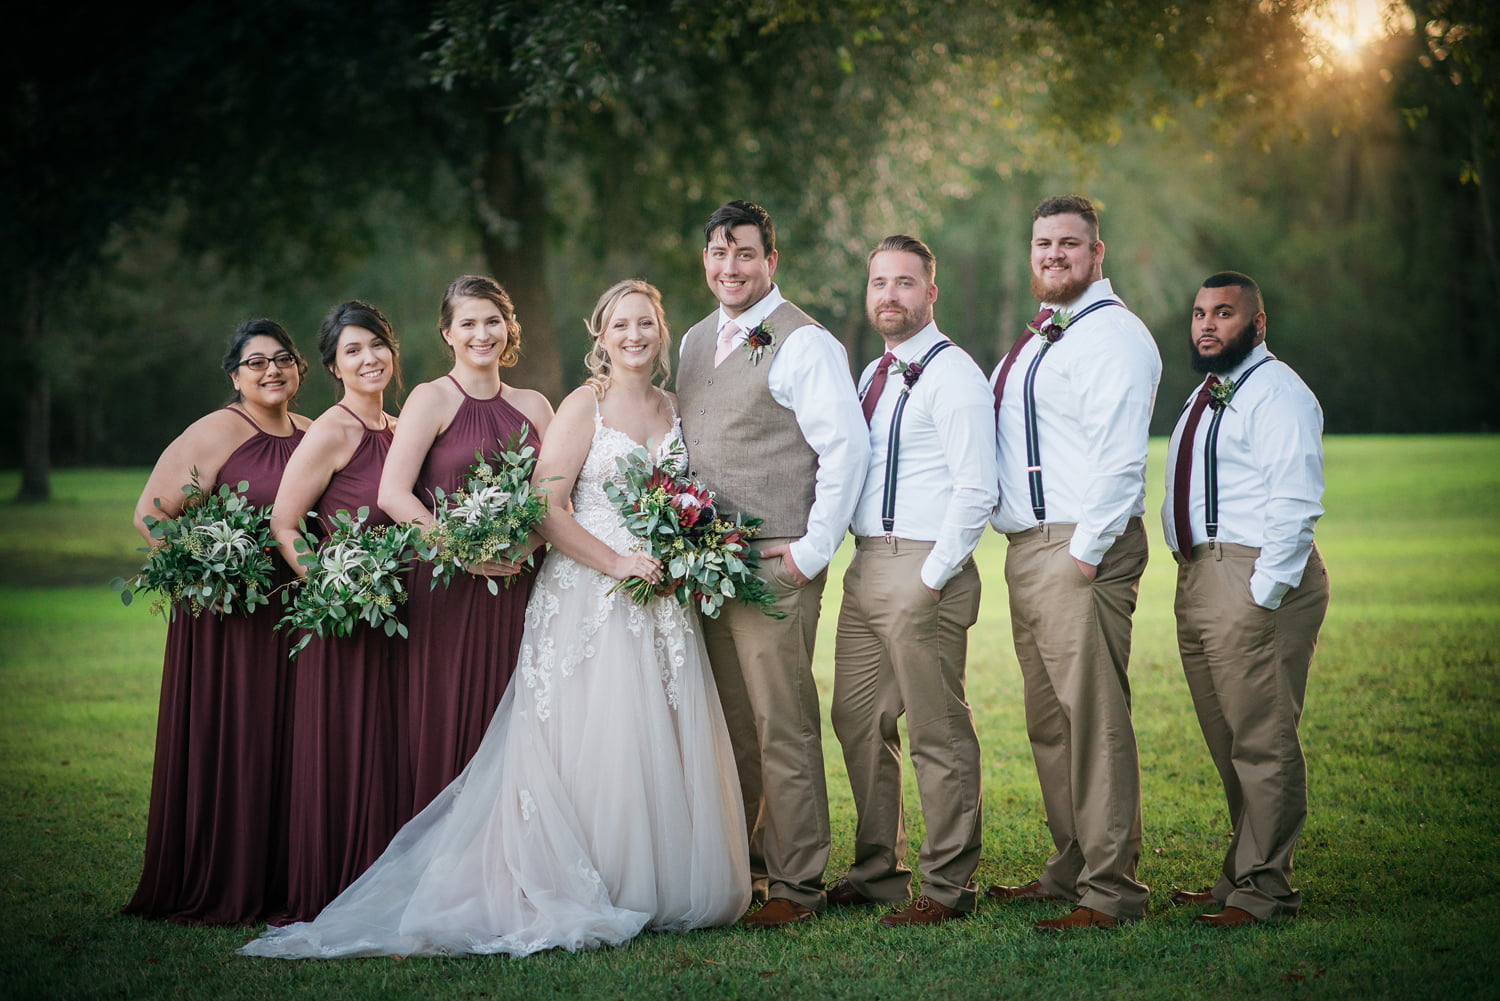 Wedding photo taken by Lisa Rowland Photography in Trenton, Florida